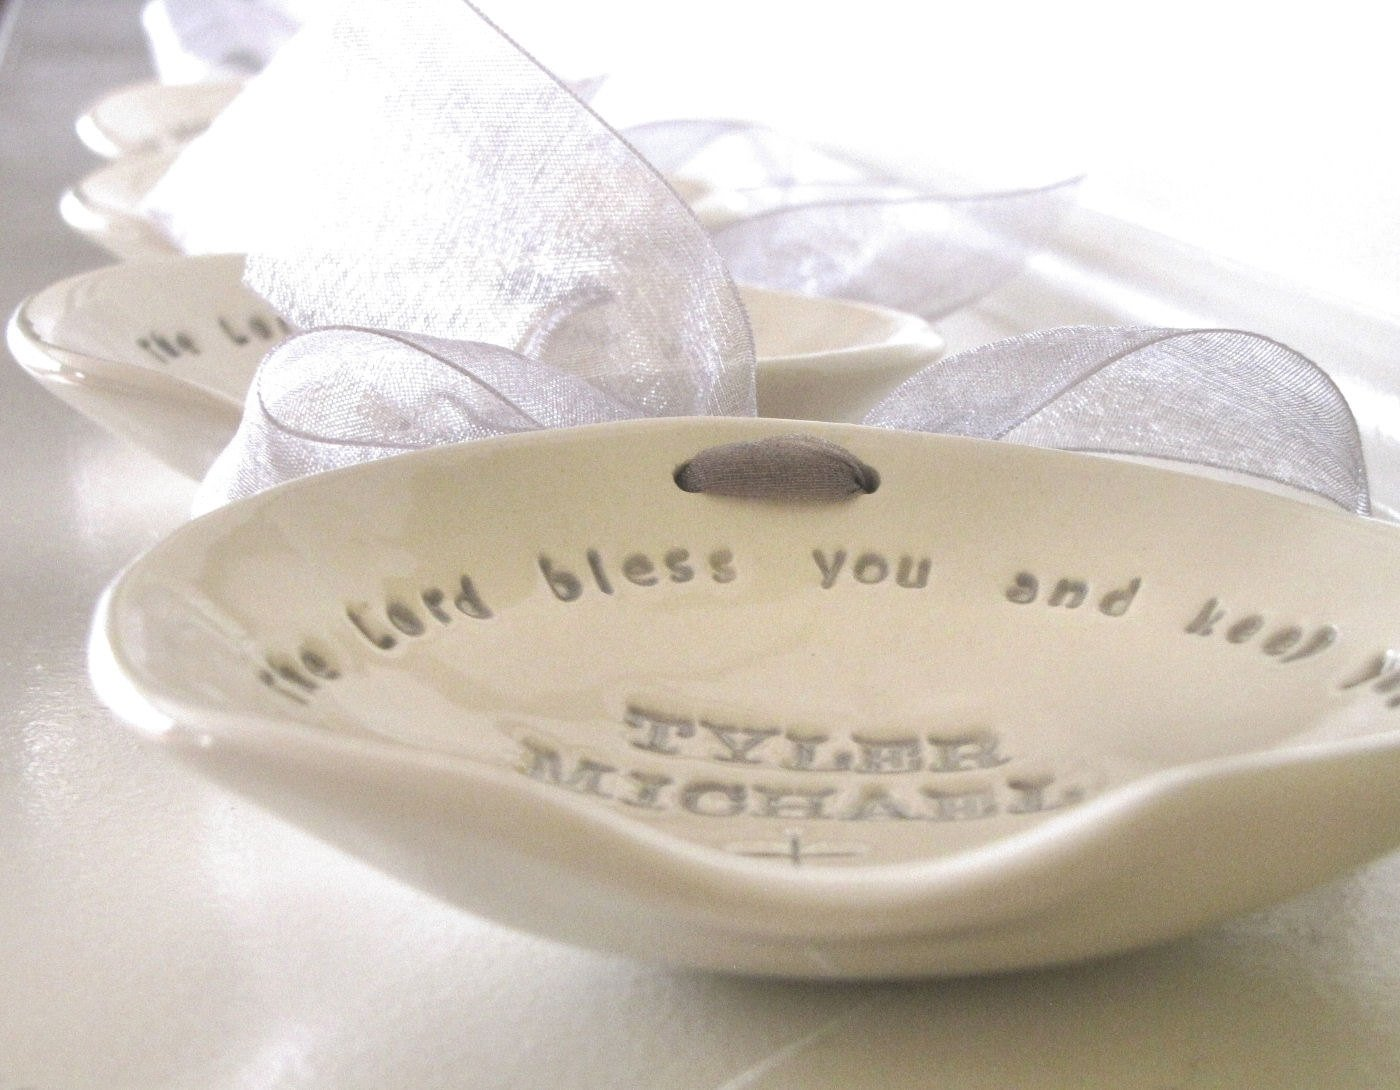 10 Unique Gift Ideas For Baptism Boy baptism gift ideas the christening party of baptism ideas 2020